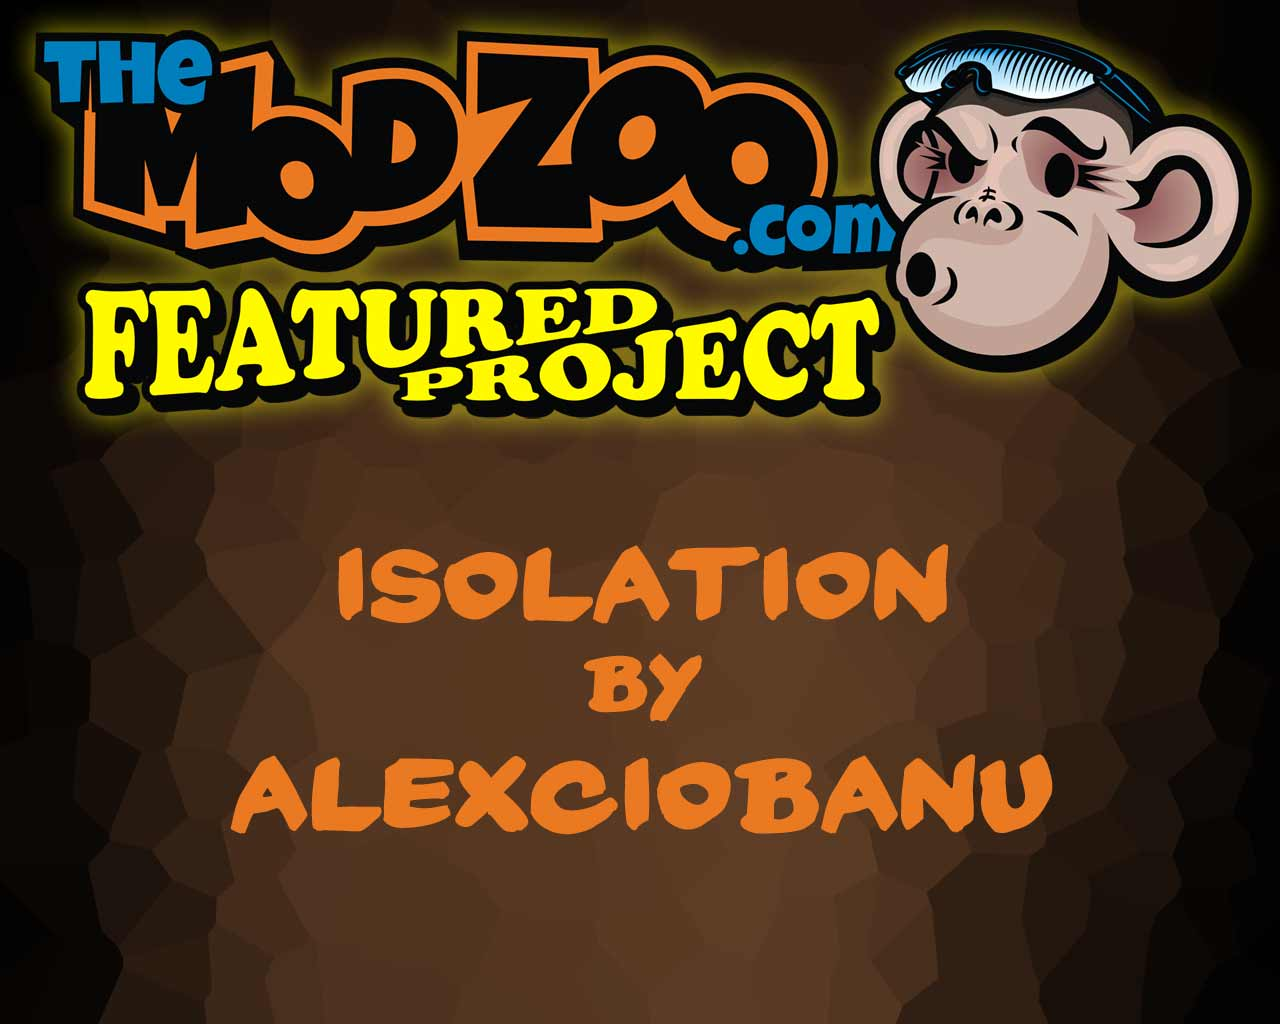 featured_projects_project_isolation_alexciobanu